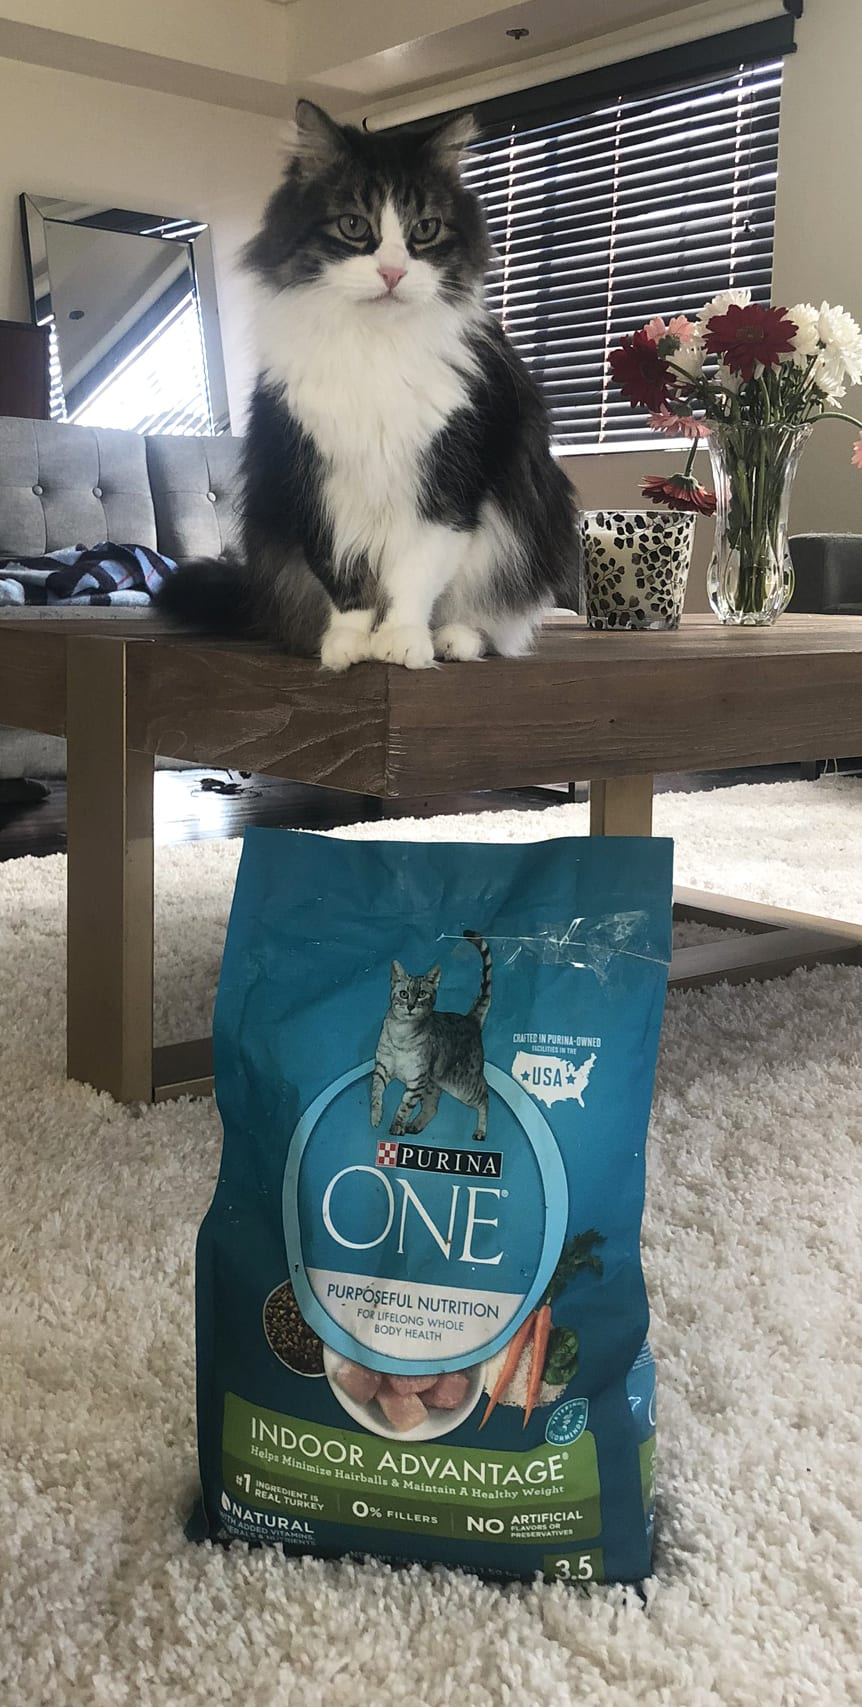 Purina One - 28 Day Challenge